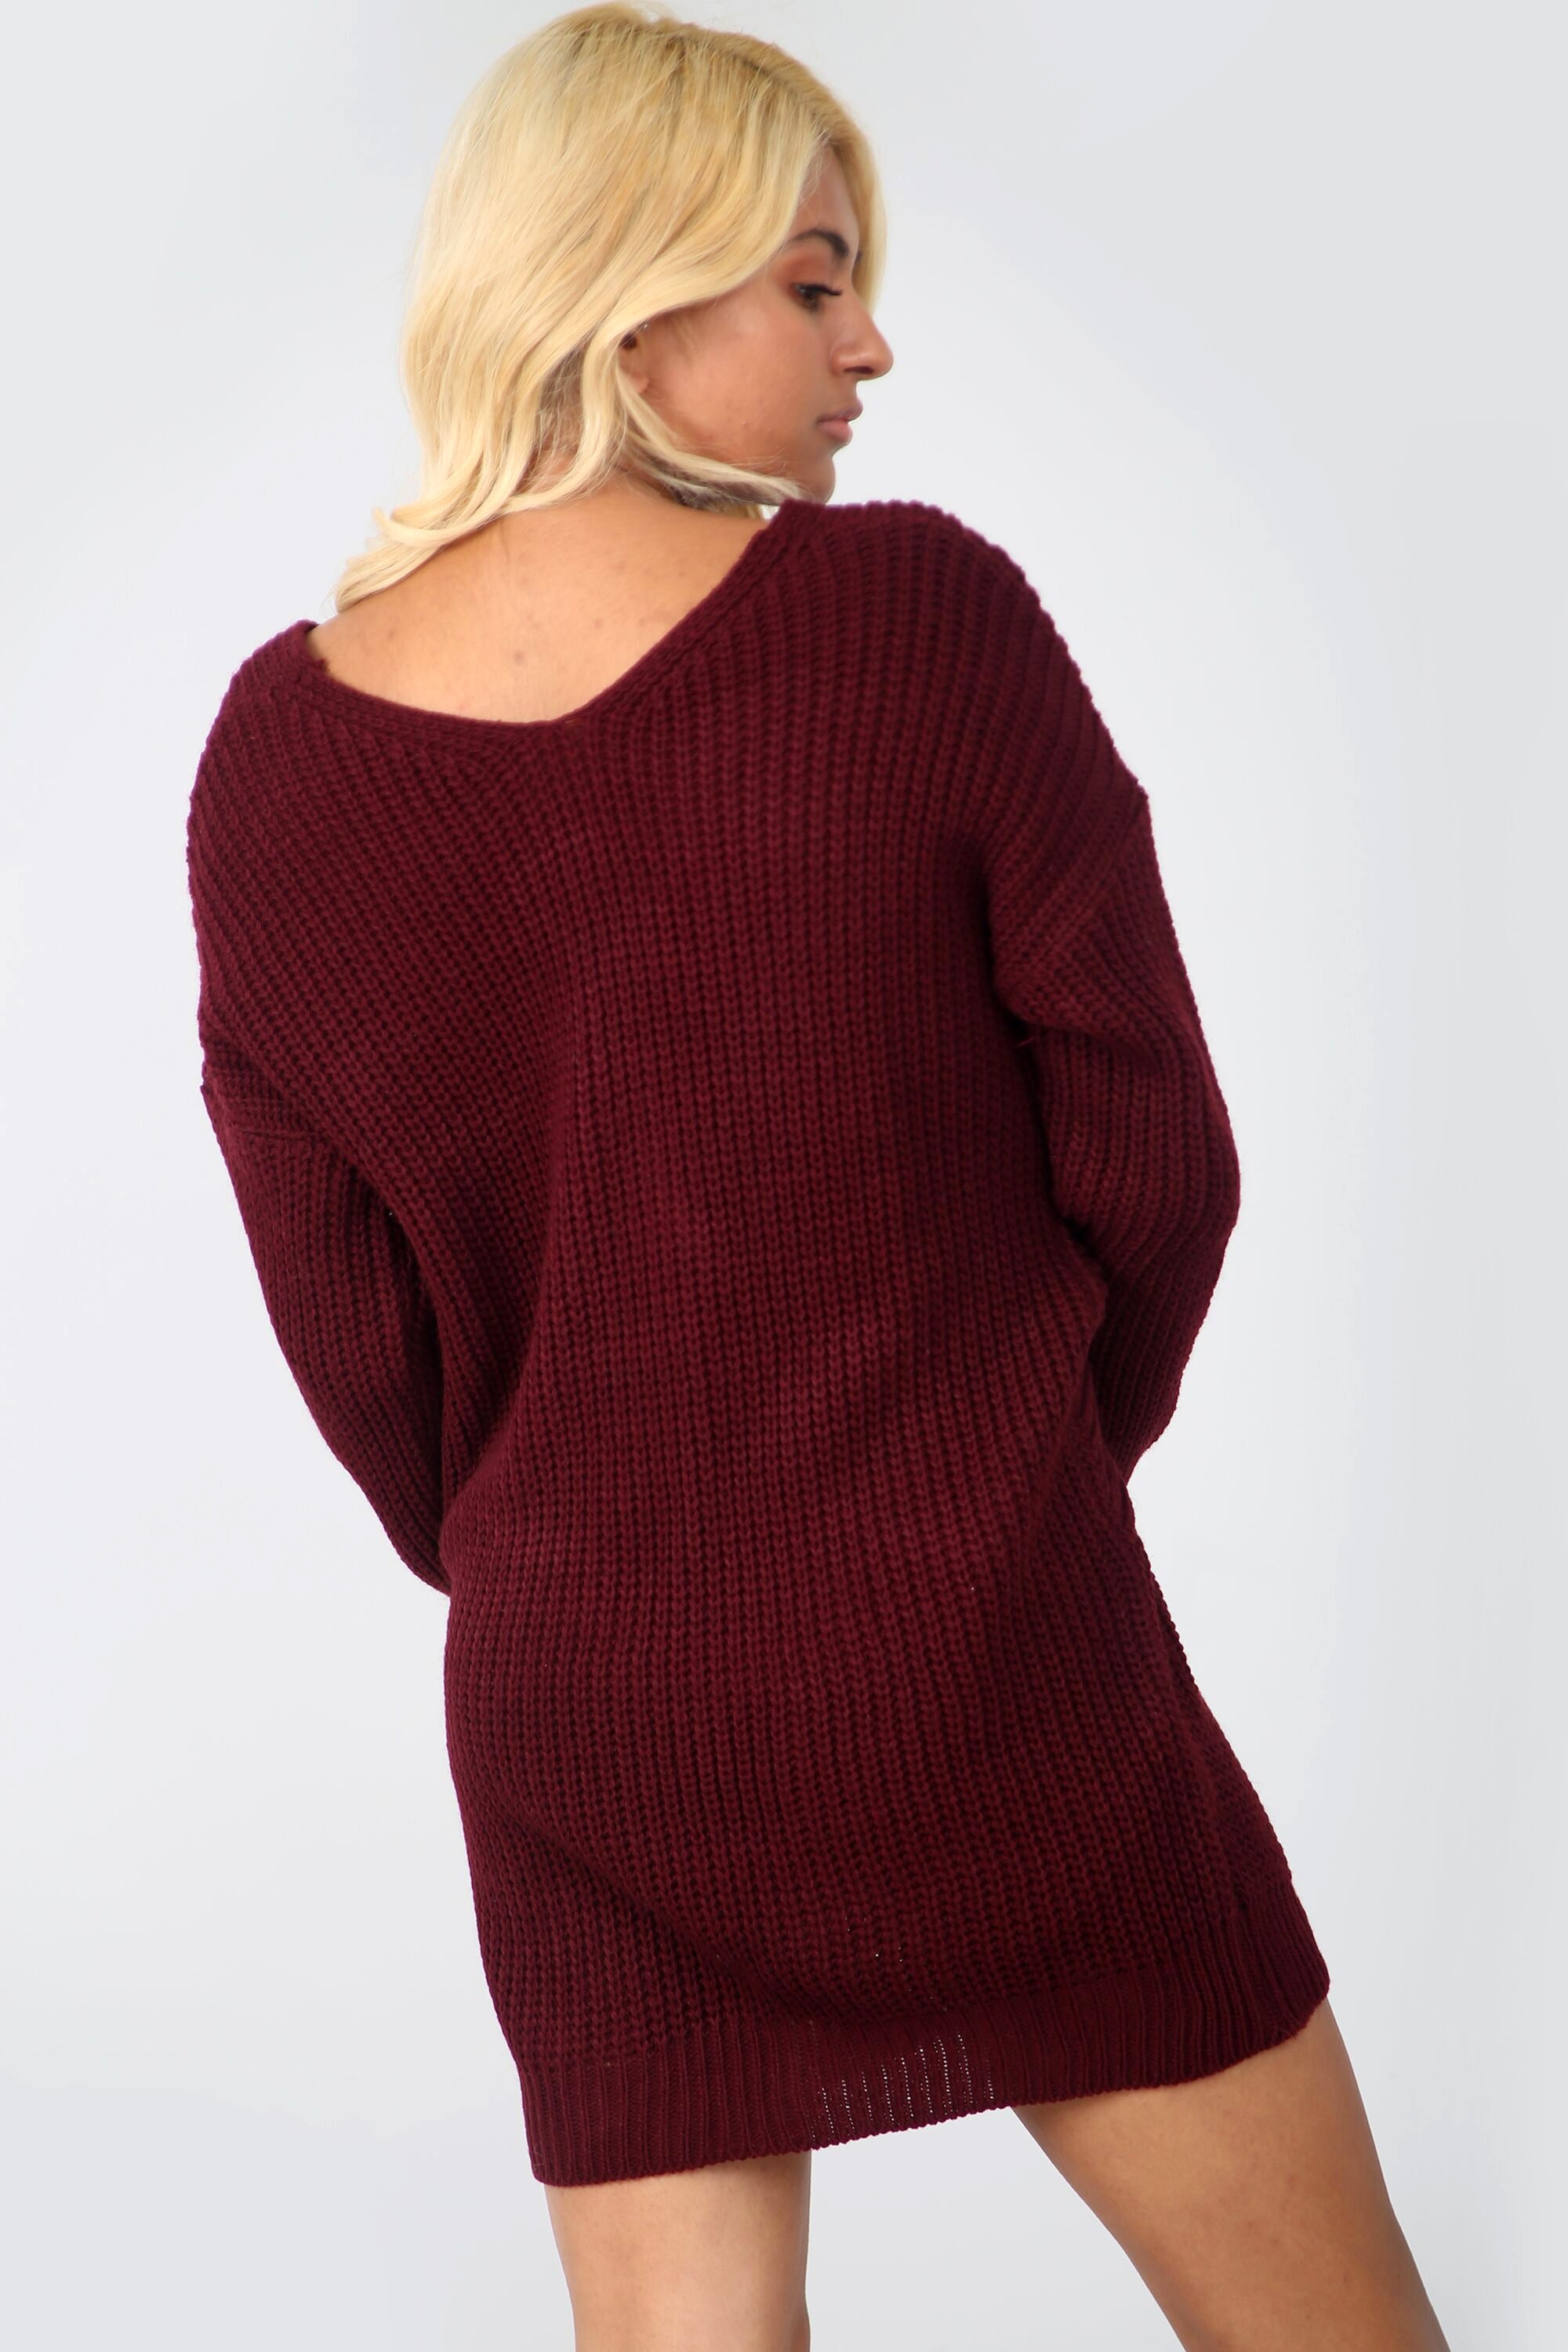 Burgundy Twist Front Oversize Knitted Jumper Dress - bejealous-com